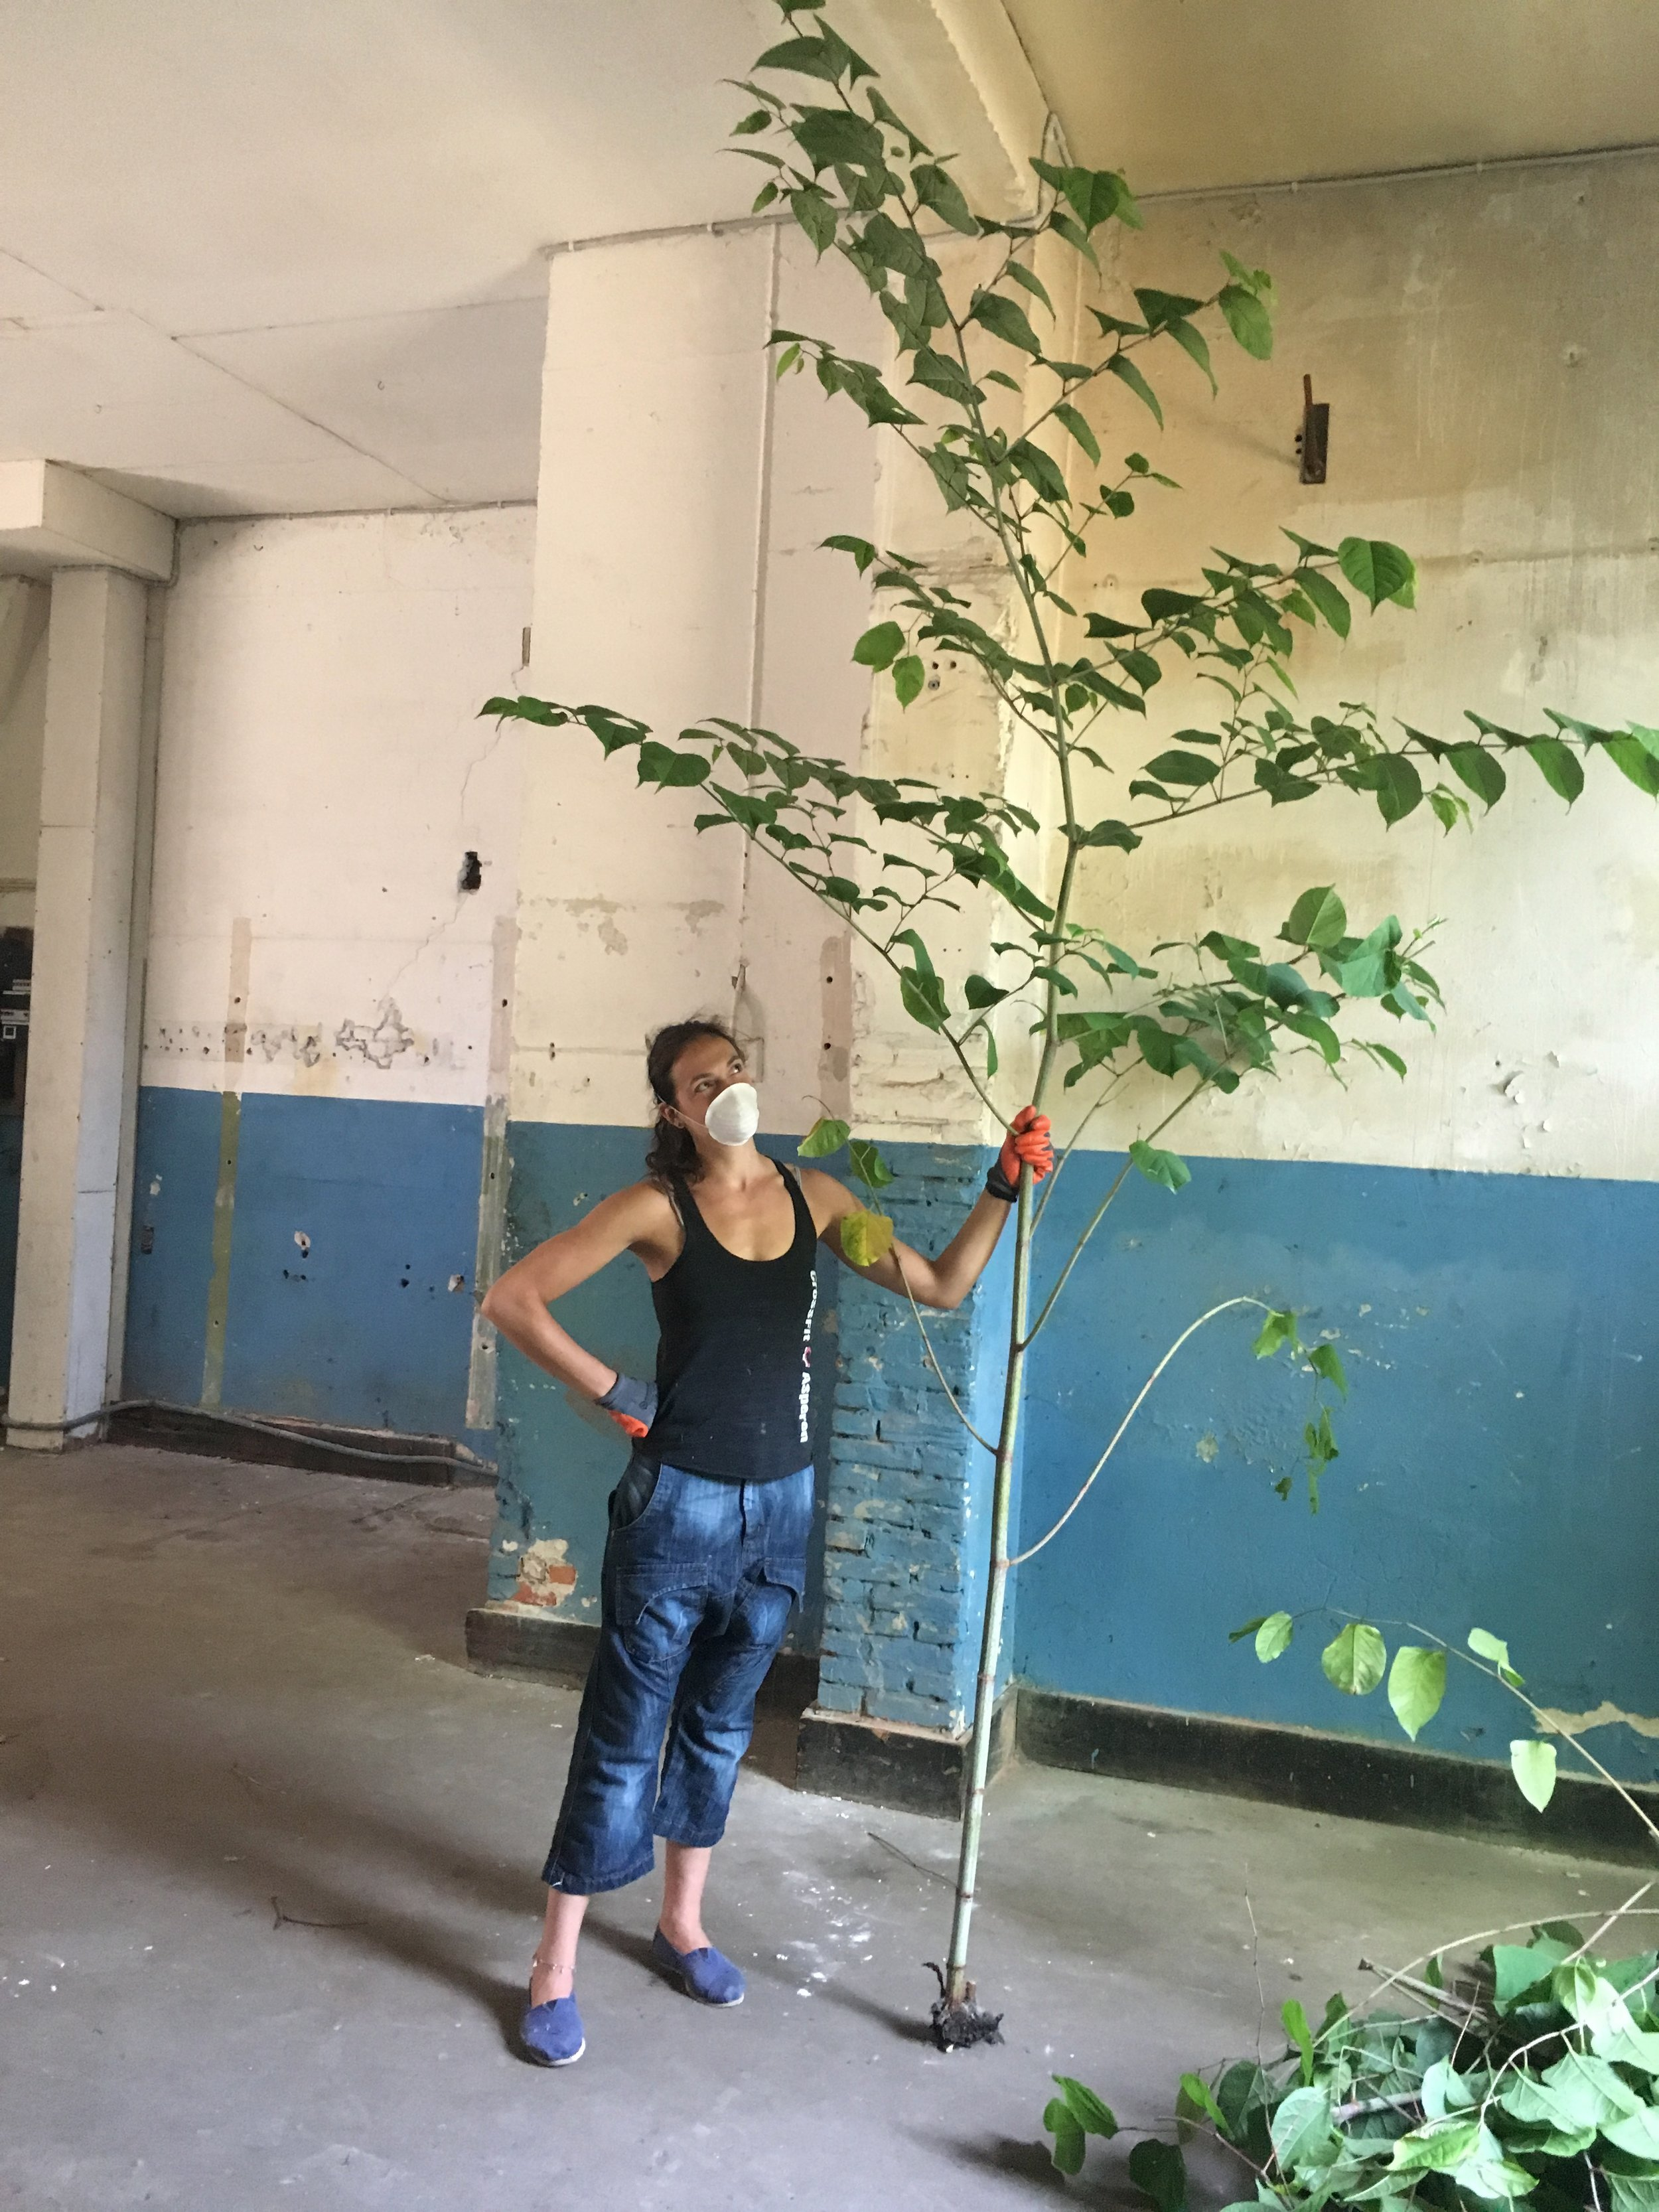 weeds as tall as trees, oh my